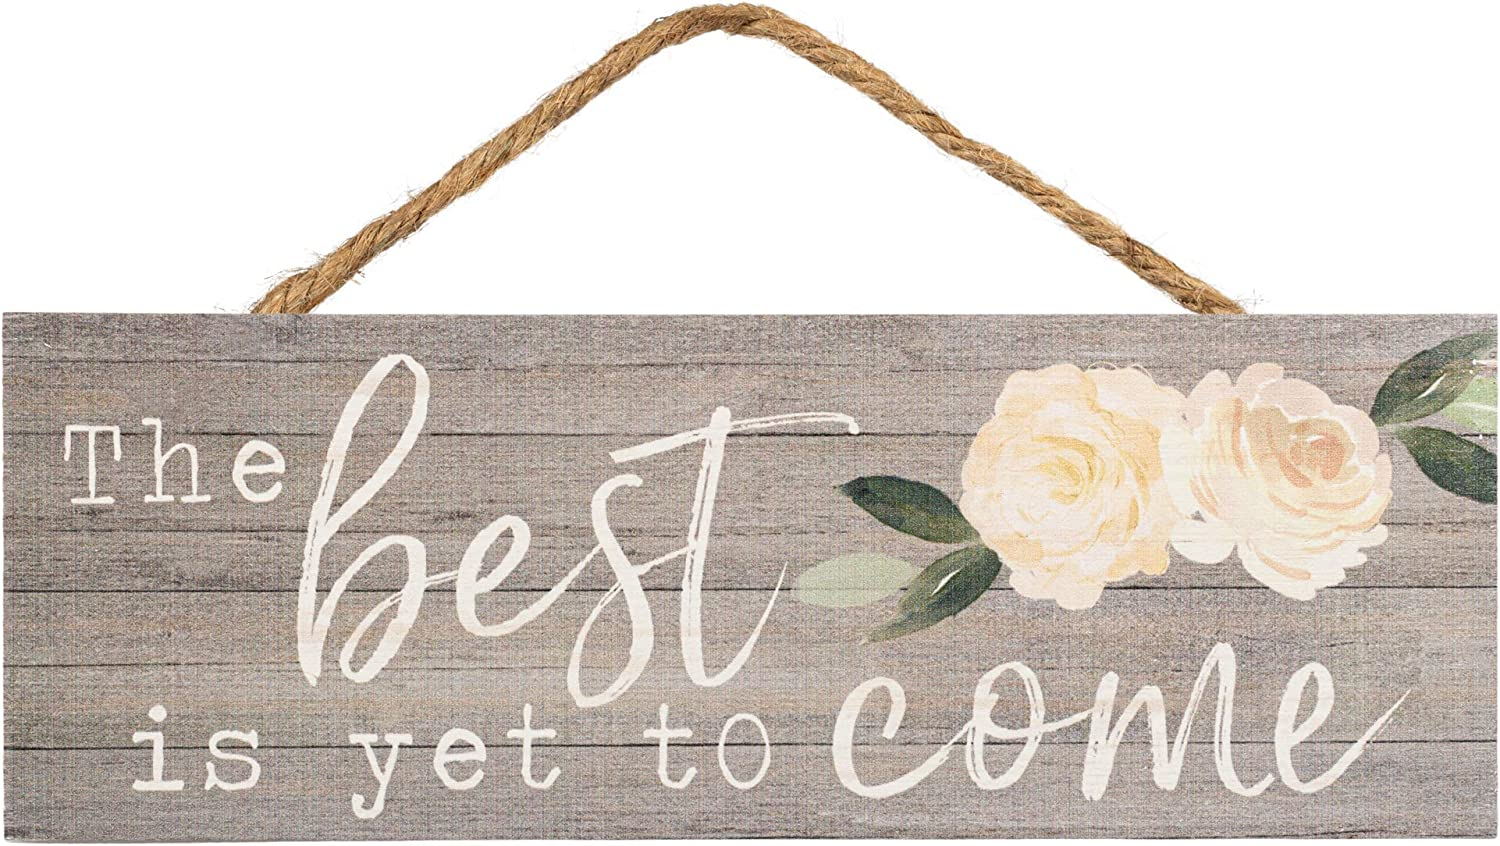 P. Graham Dunn Best Yet to Come Peonies Grey 10 x 3.5 Inch Pine Wood Slat Hanging Wall Sign